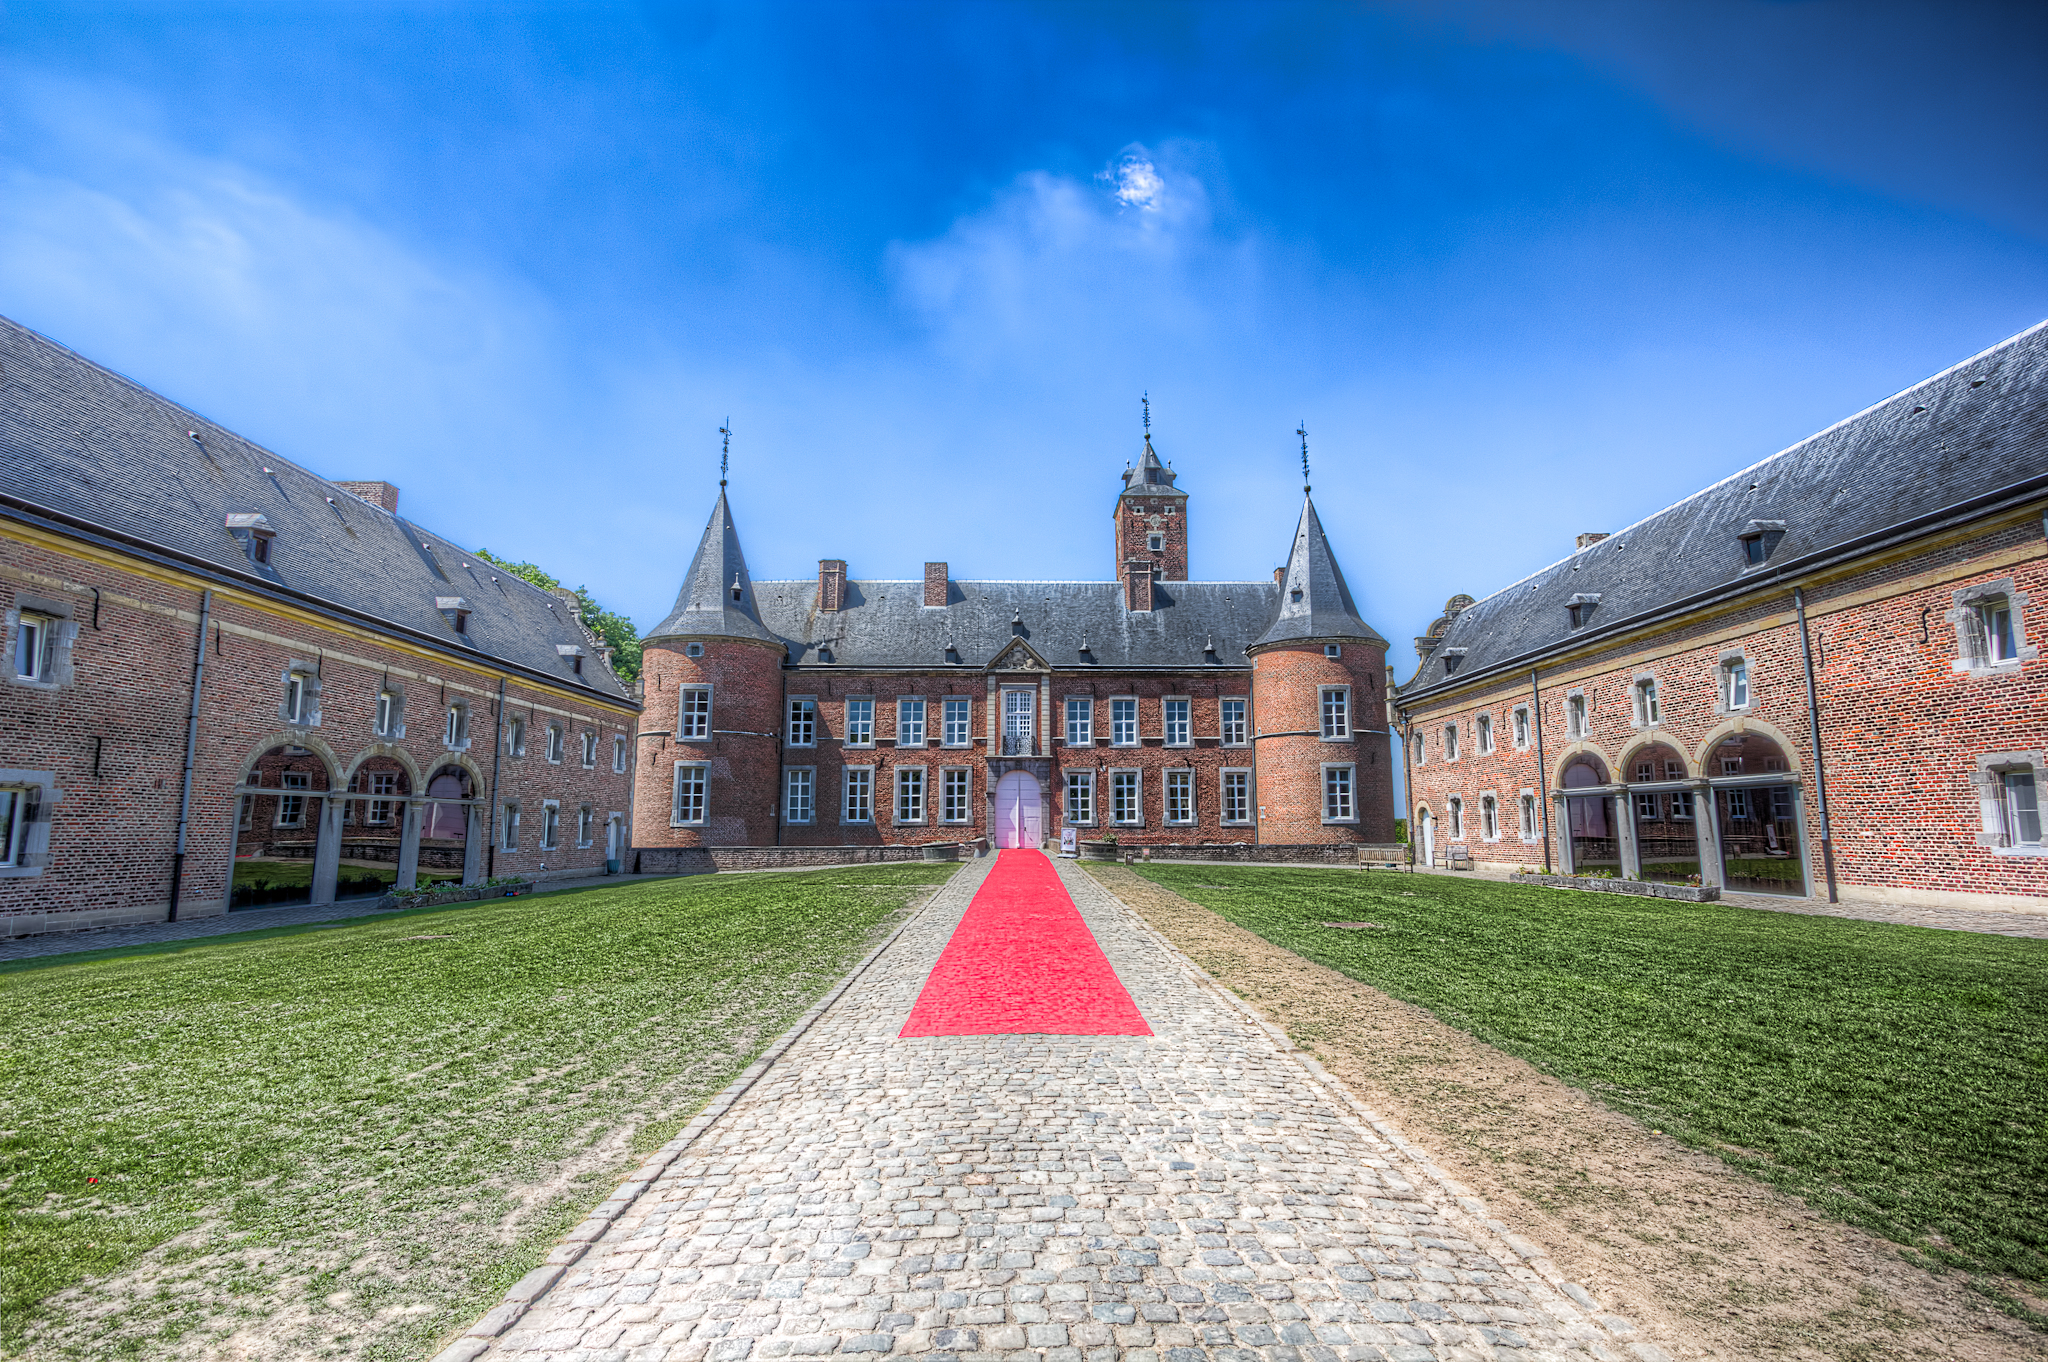 Photo: The castle in Alden Biesen (Bilzen, Belgium), home to a Deutschordensballei (bailiwick) of the Teutonic Order for a long time. The first castle was built in the 11th century, but the current castle was built between the 16th and 18th century. 